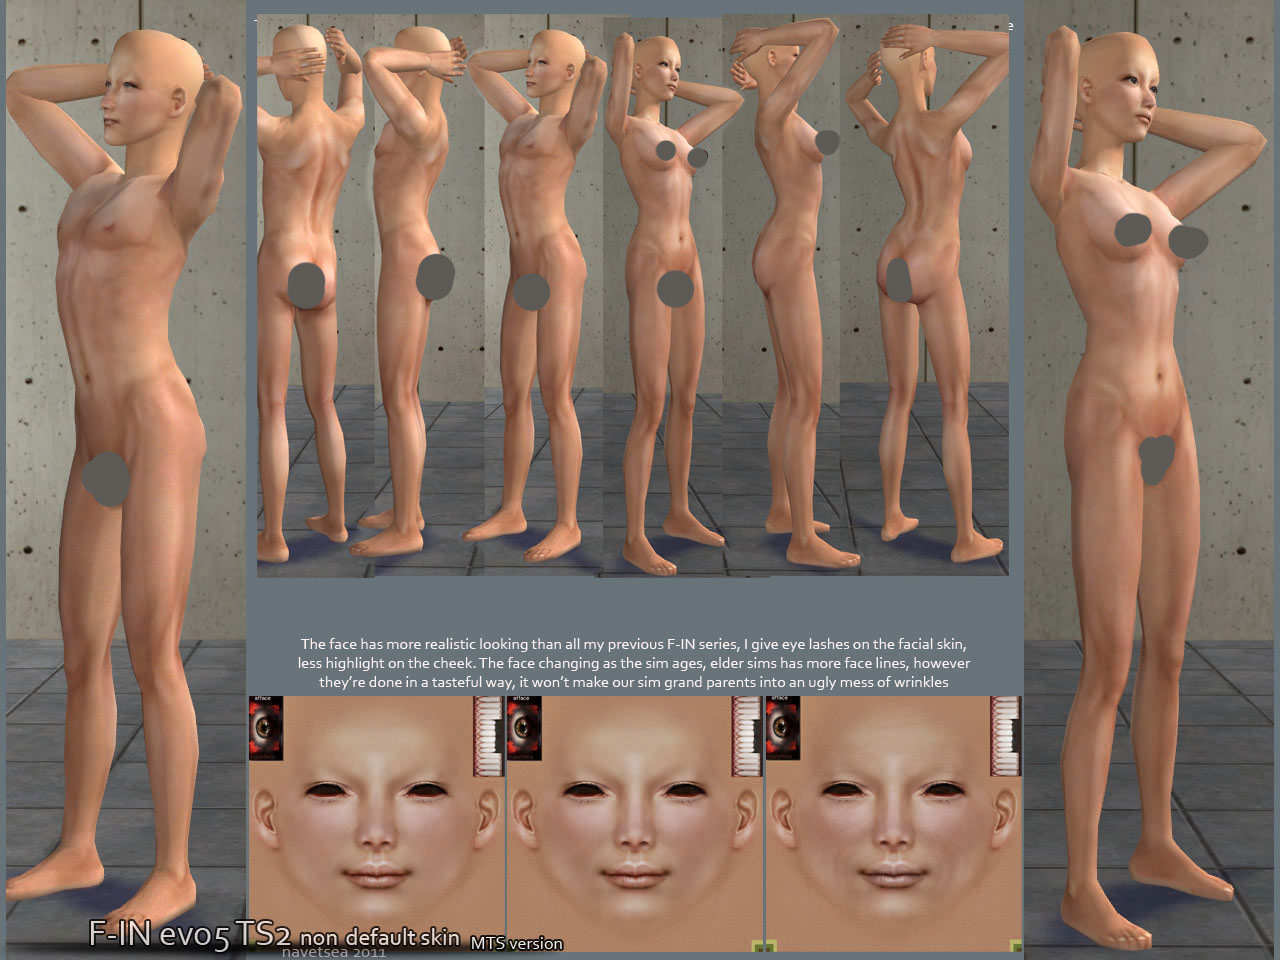 Sims 2 naked breast skins hentai photos